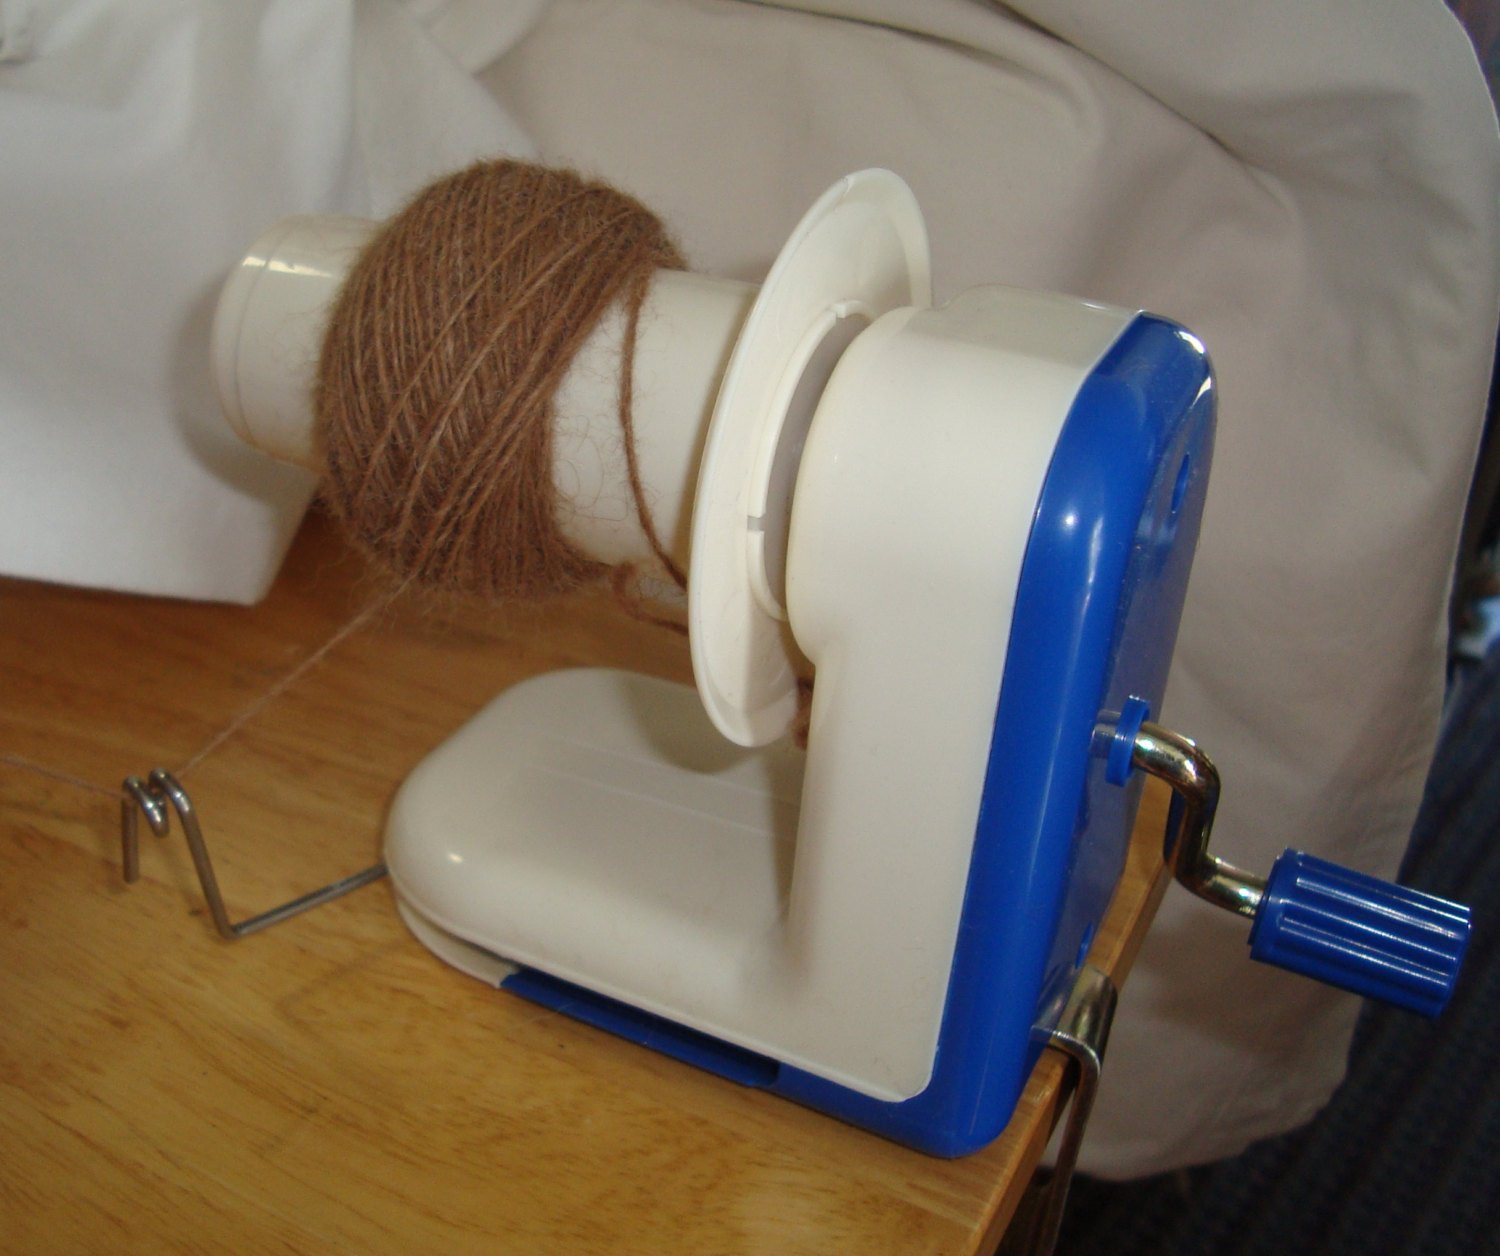 Yarn Winder Inspirational Yarn Ball Winder Center Pull Excellent for Small Balls Odd Of Fresh 44 Photos Yarn Winder